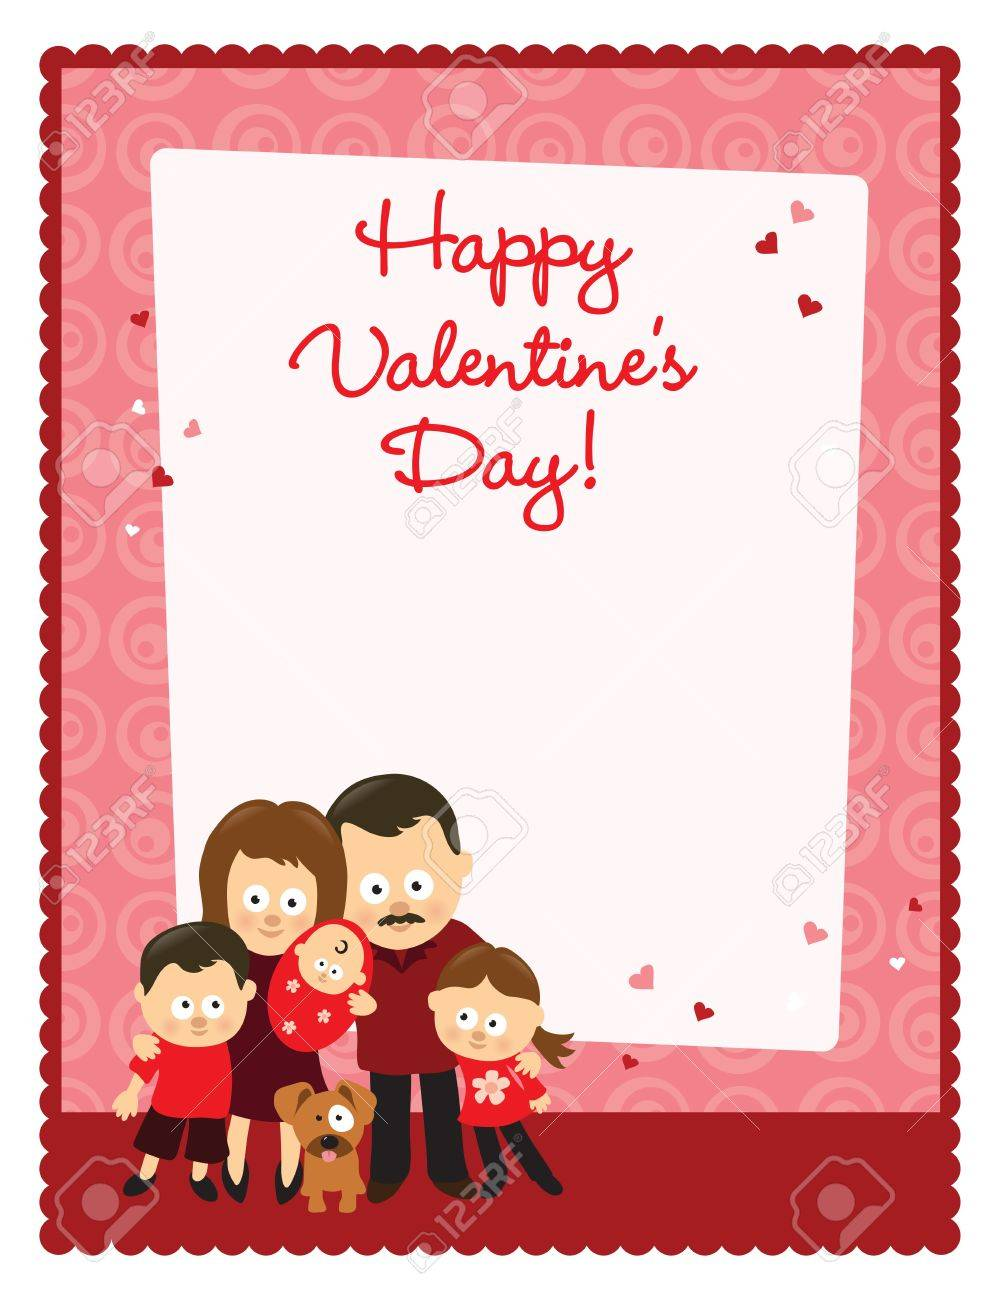 Valentine S Day Flyer With Family Royalty Free Cliparts Vectors